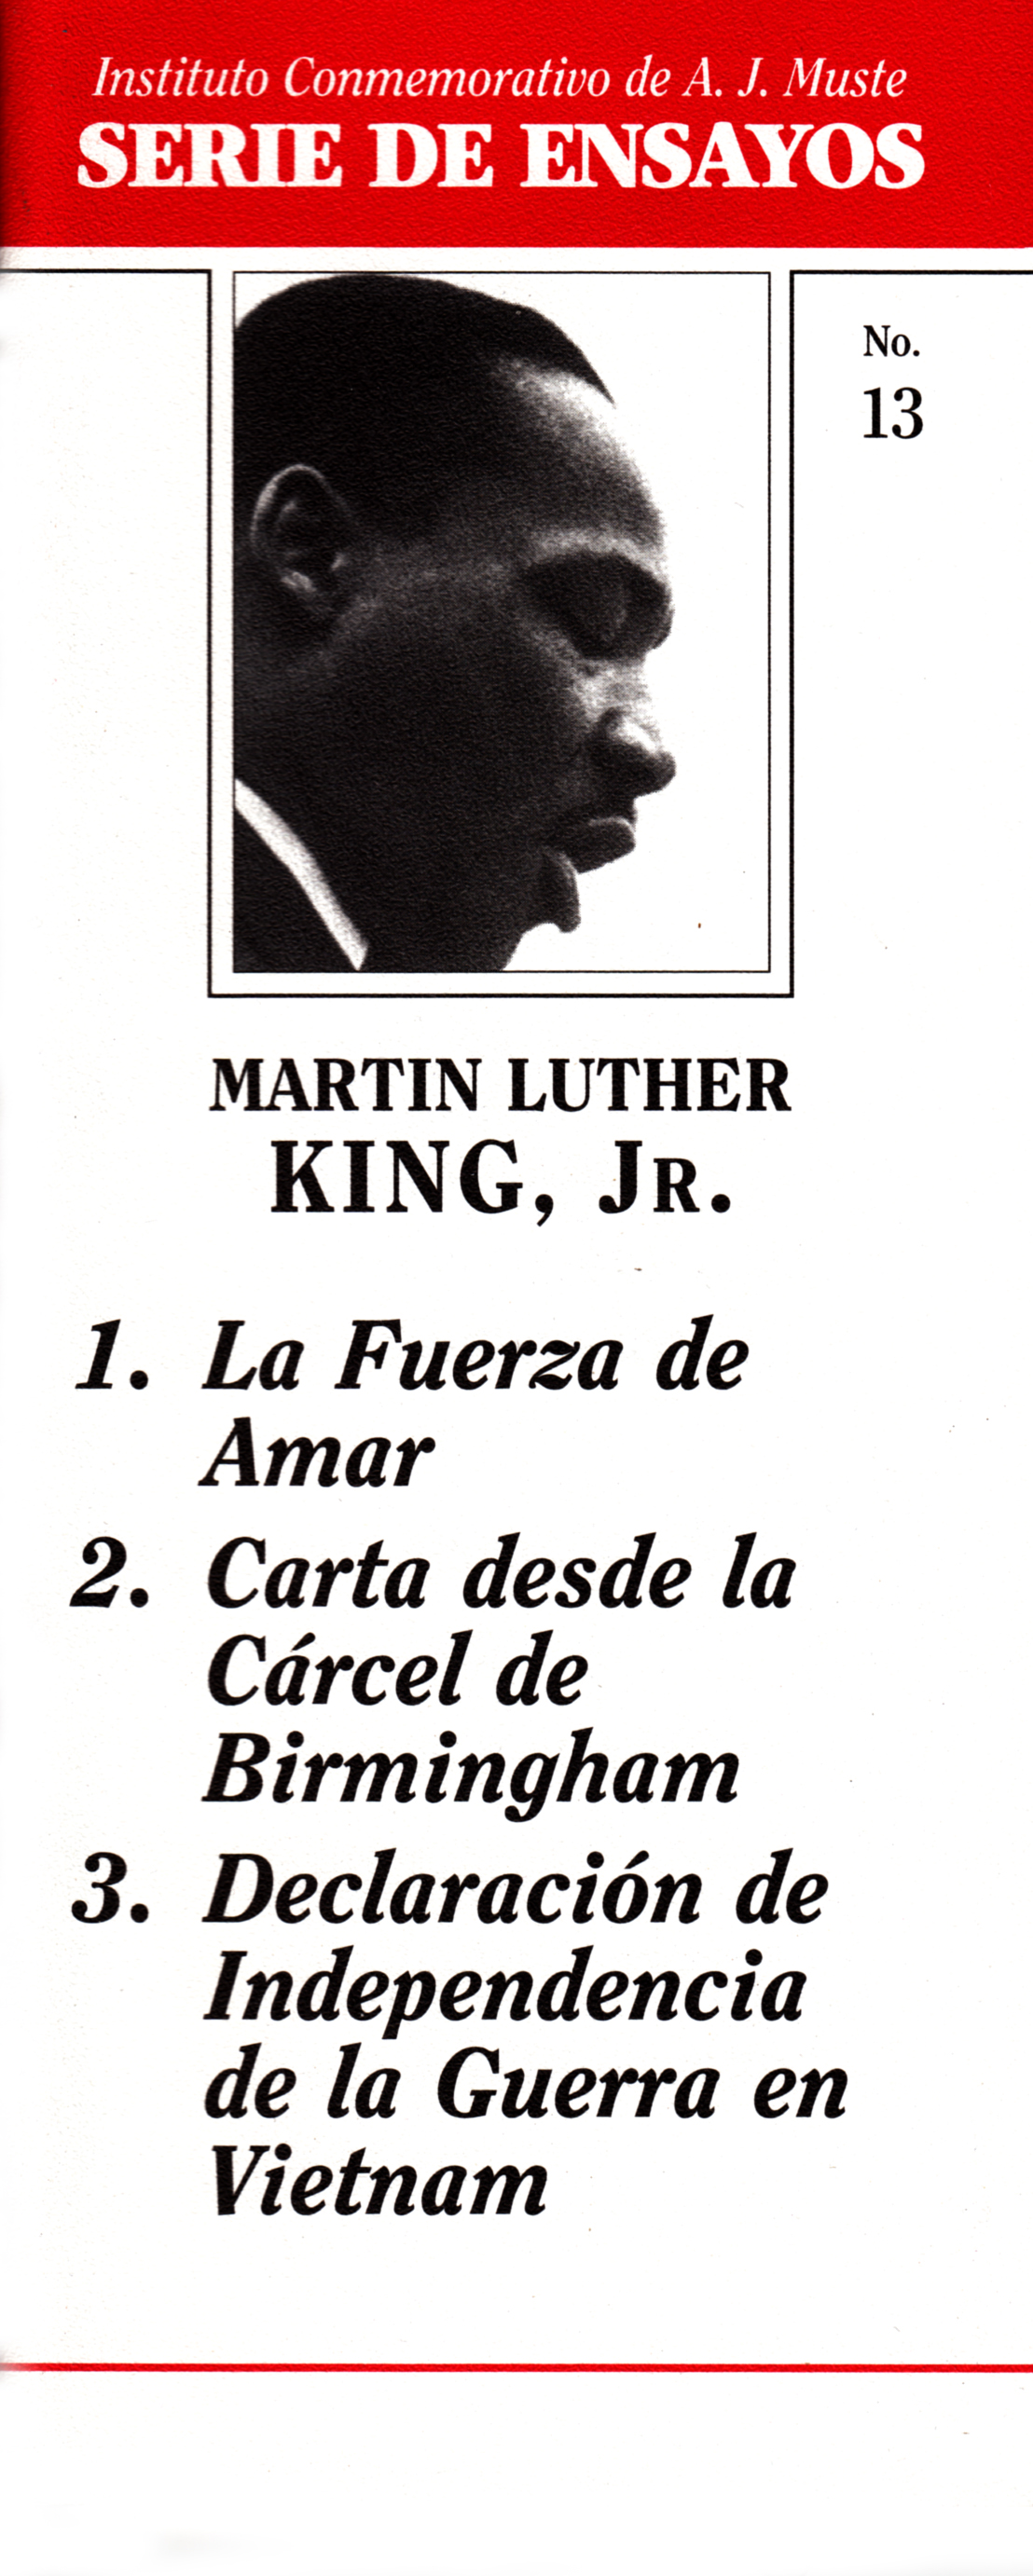 essays on martin luther king comperitave essay on martin luther  essays by martin luther king jr war resisters league essays by martin luther king jr spanish